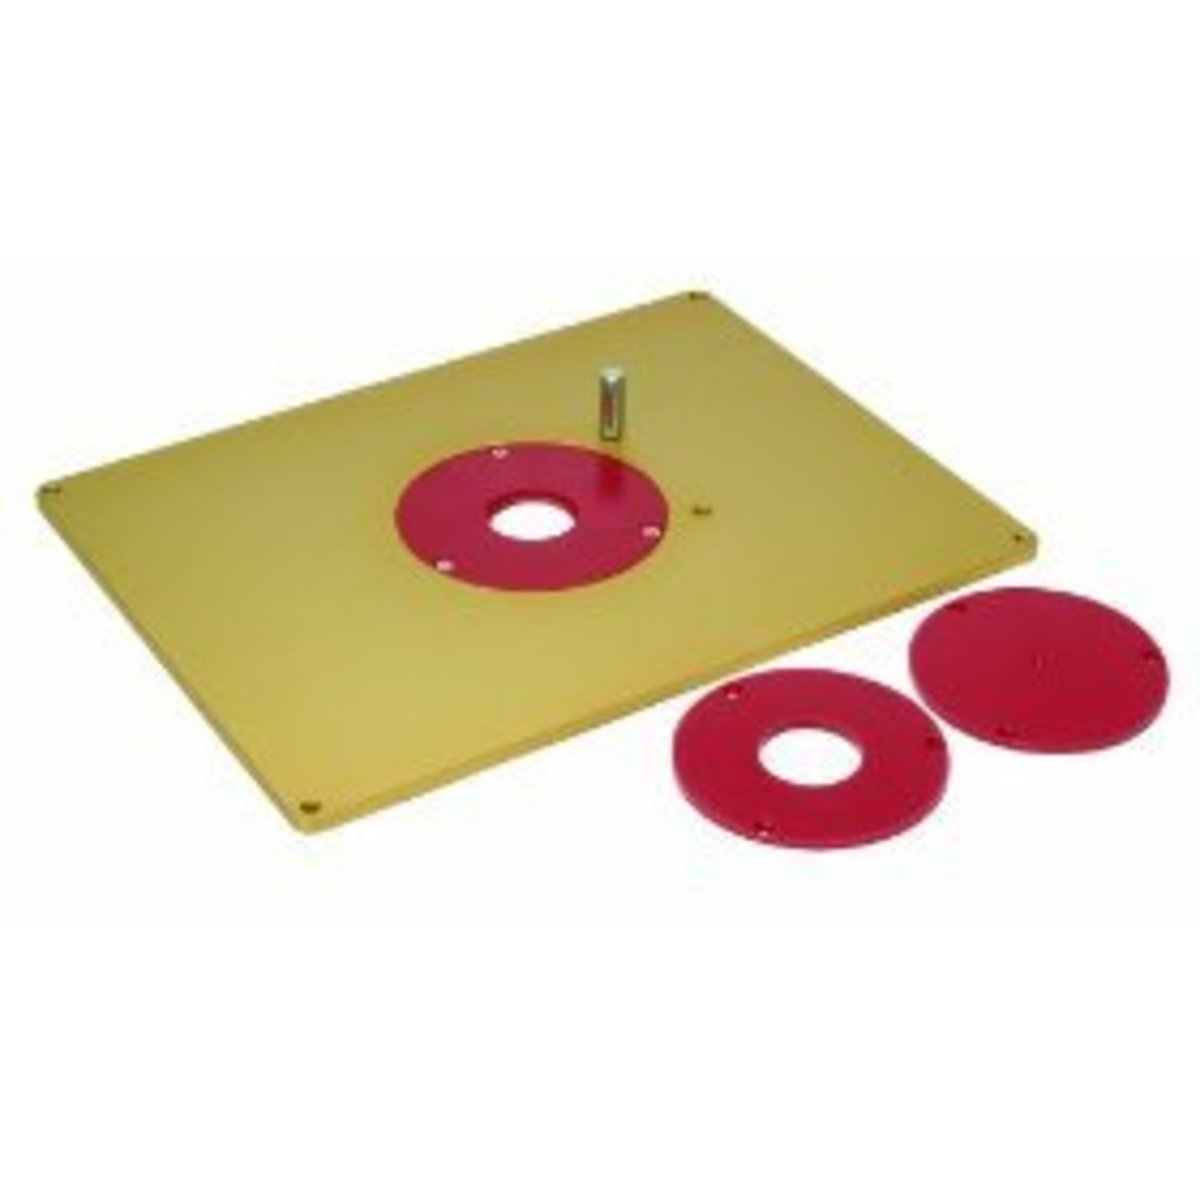 Router Table Insert Plate Sizes